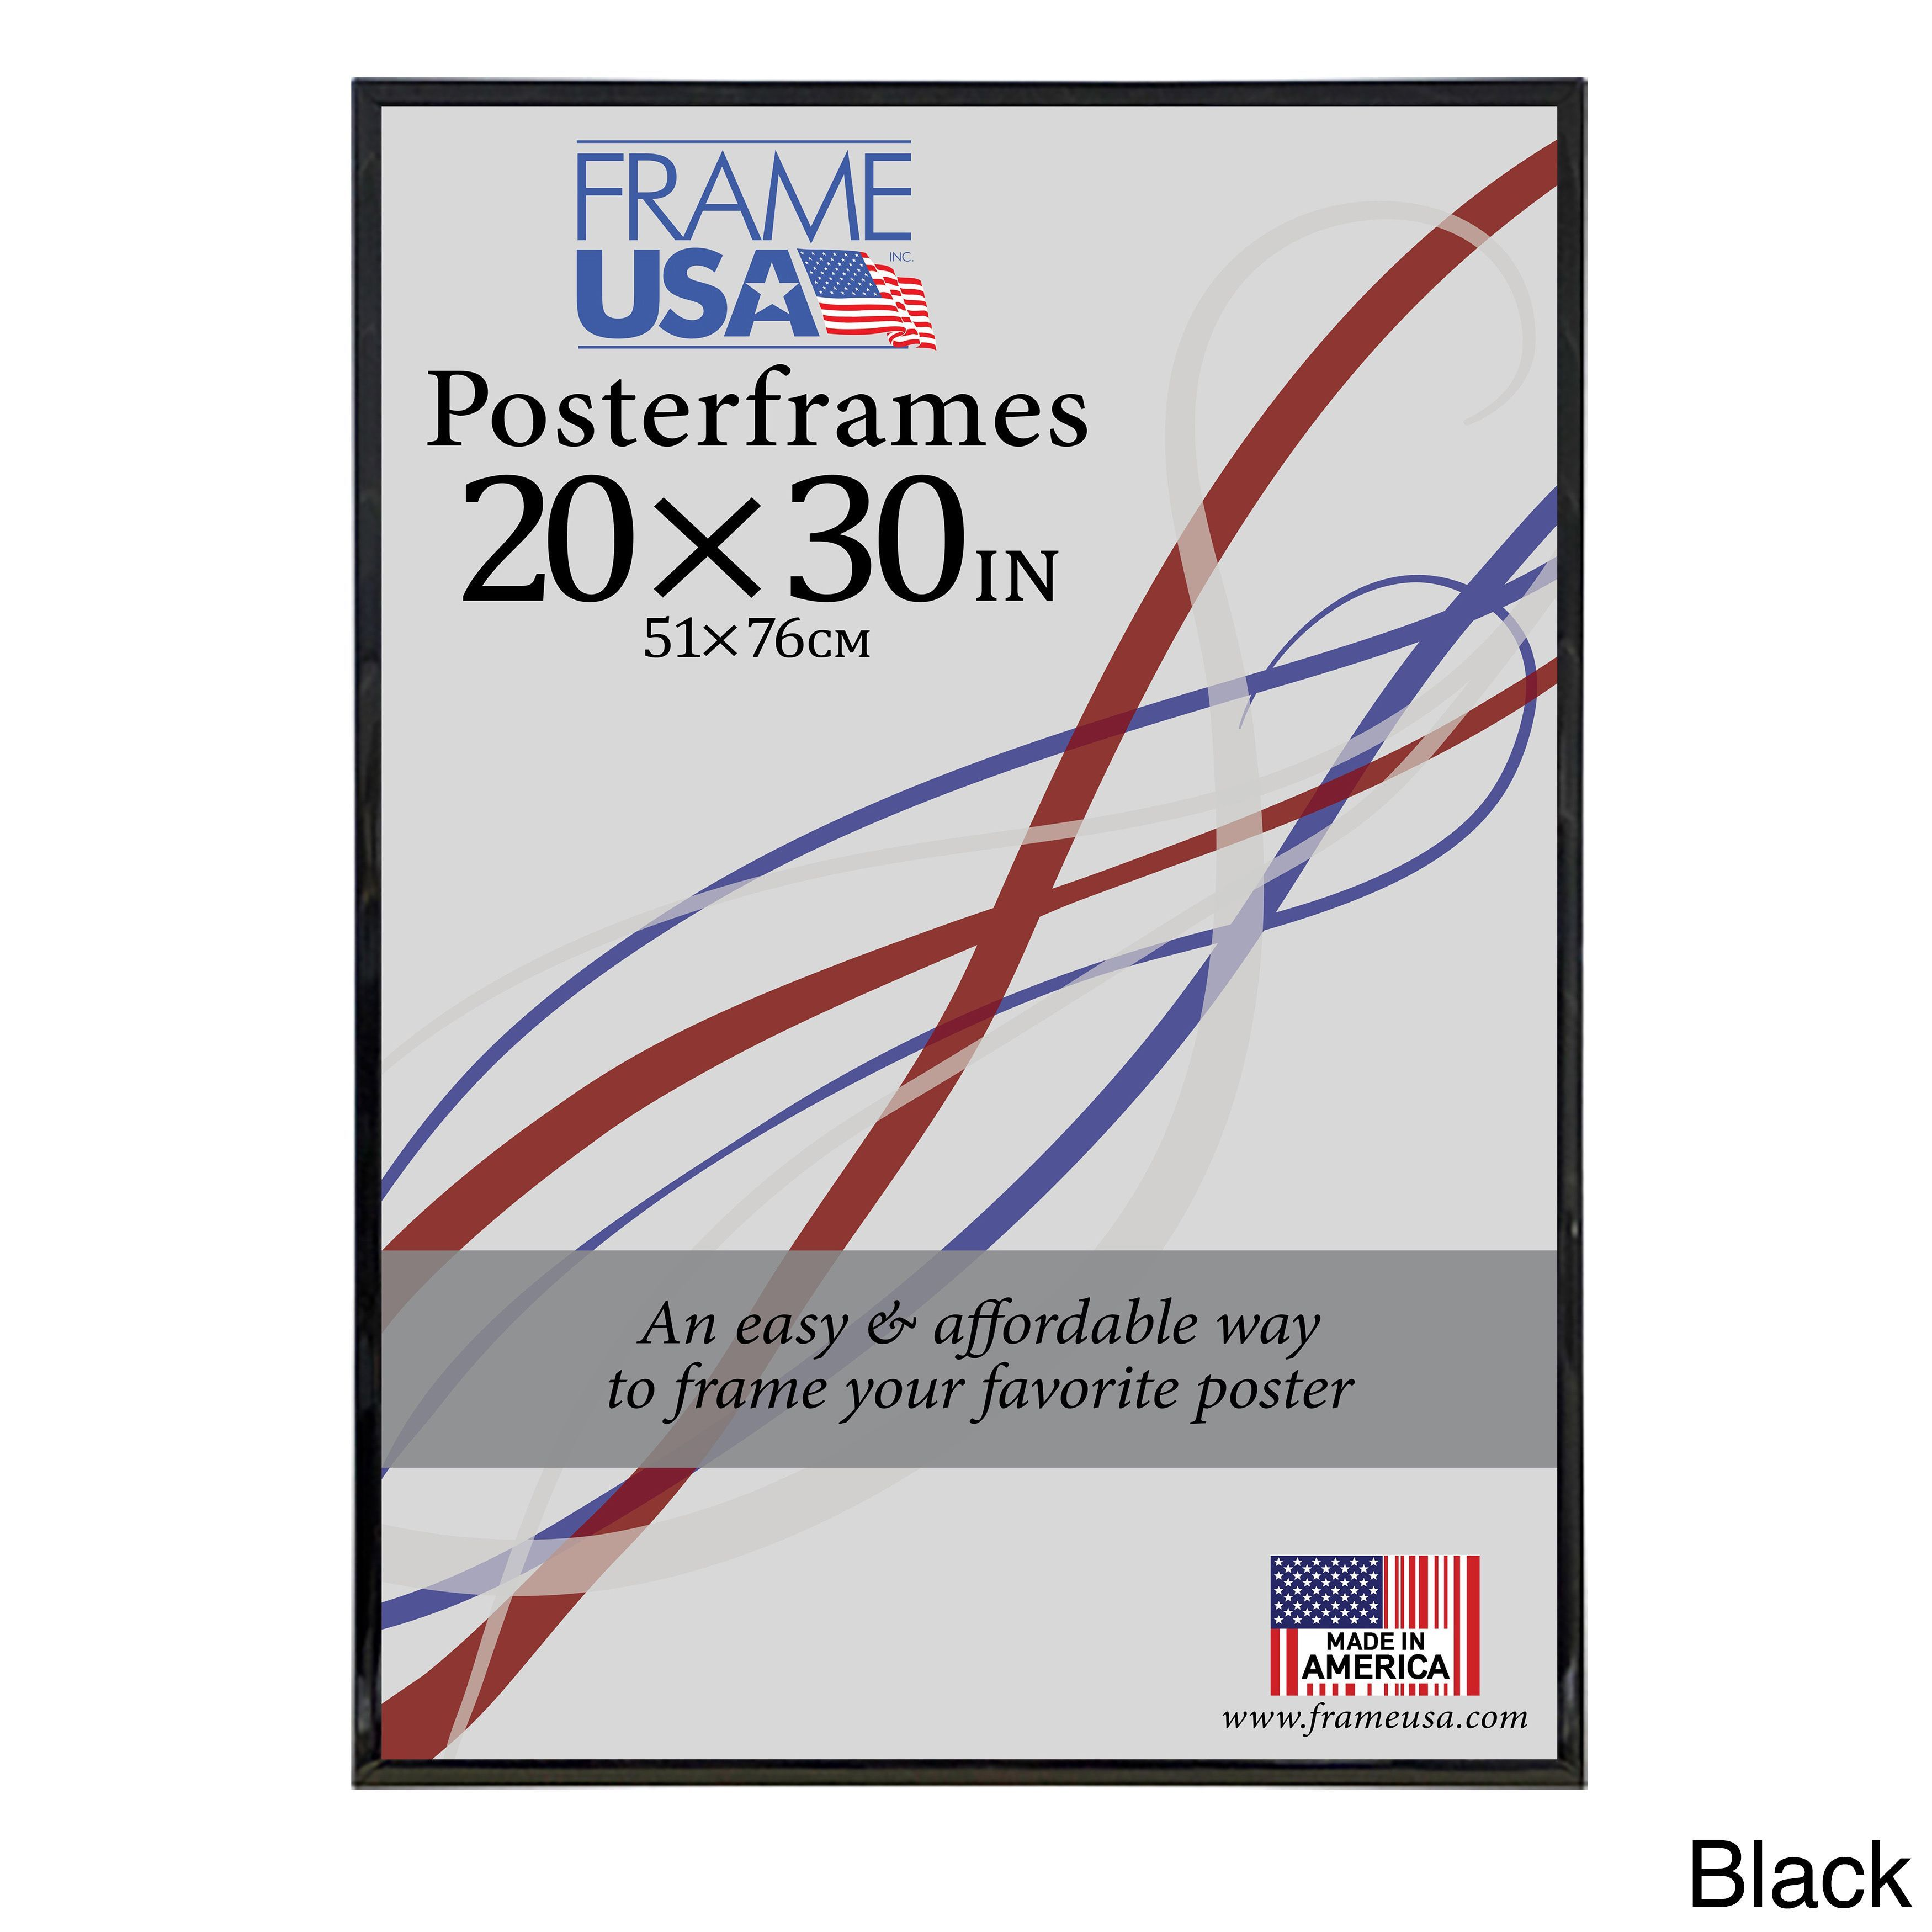 Corrugated Poster Frame 20x30 Black Frame Usa Products